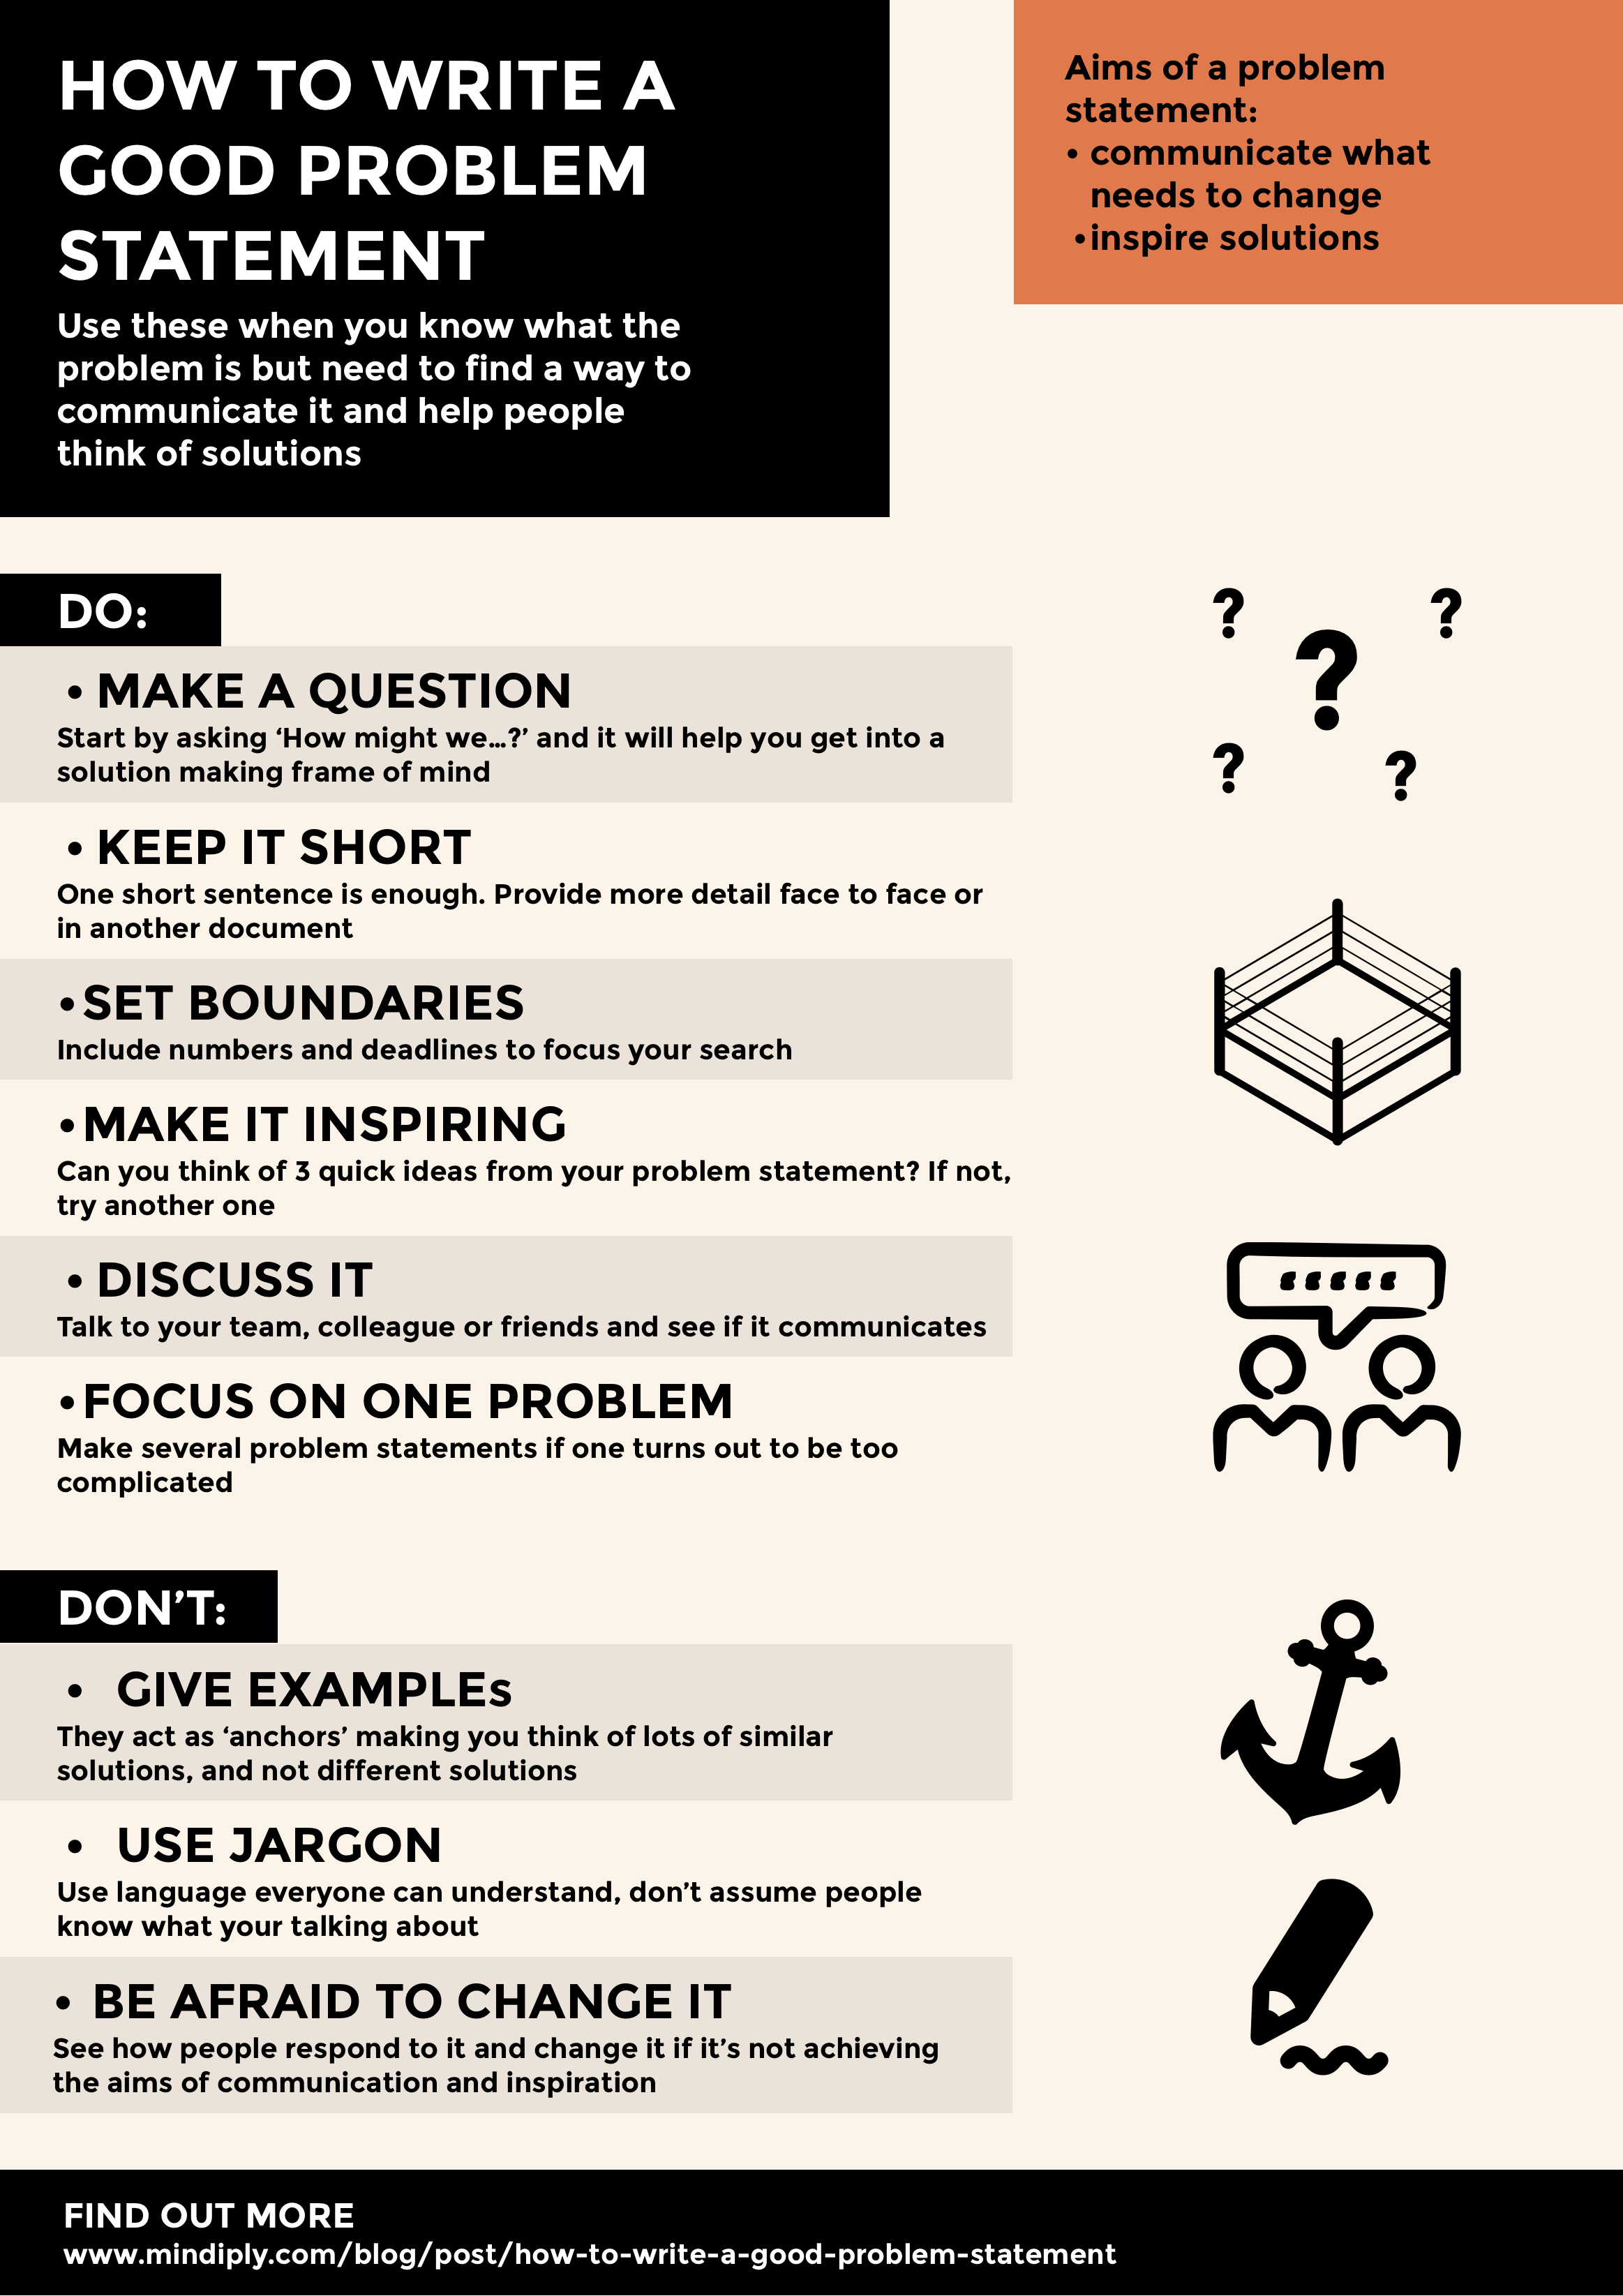 Do's and Don'ts of writing a problem statement - INFOGRAPHIC